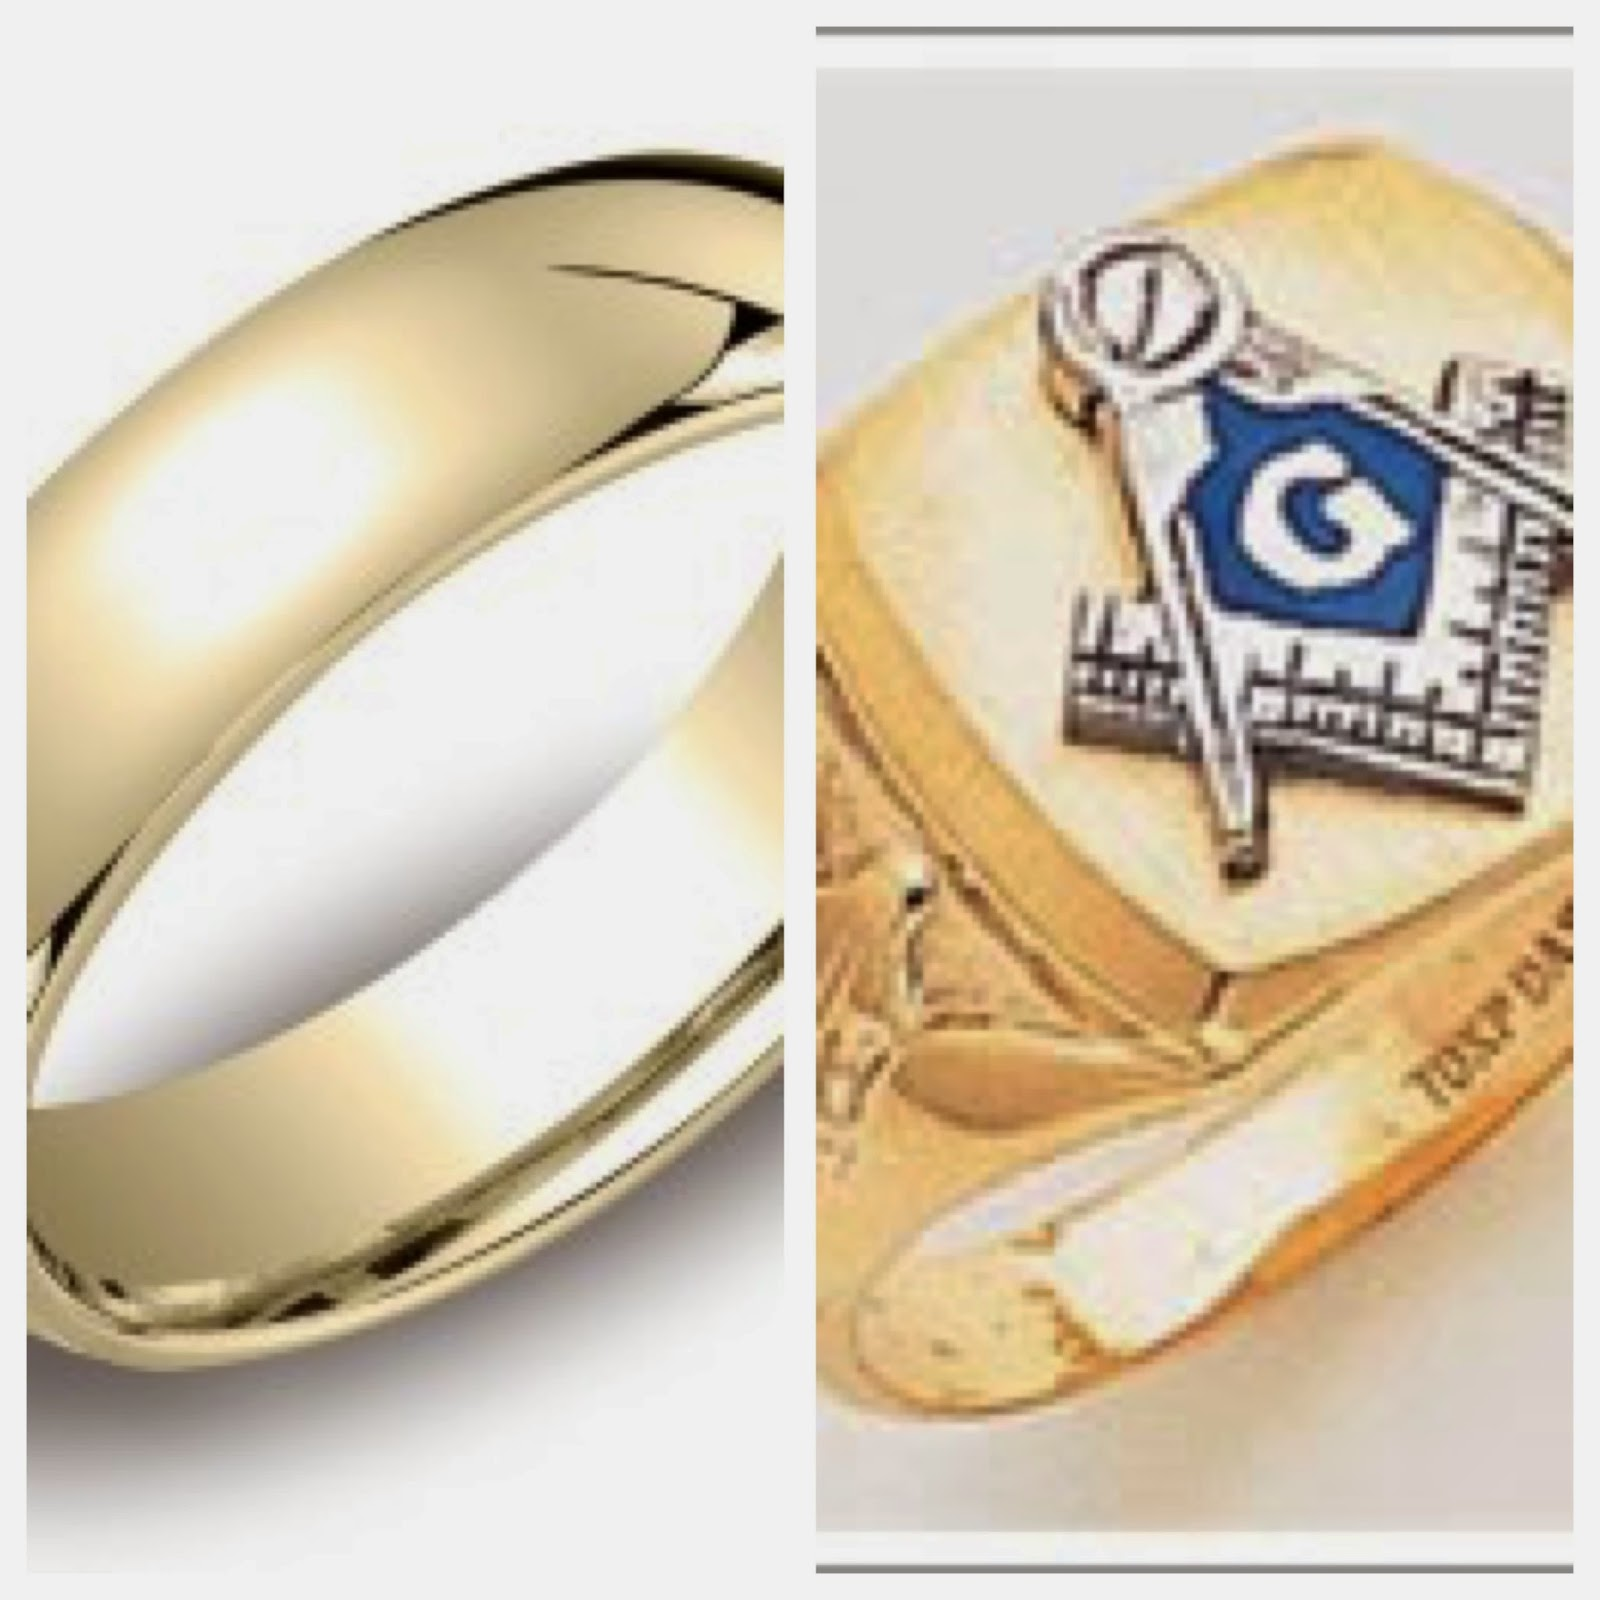 Wow new wedding rings Freemason wedding rings